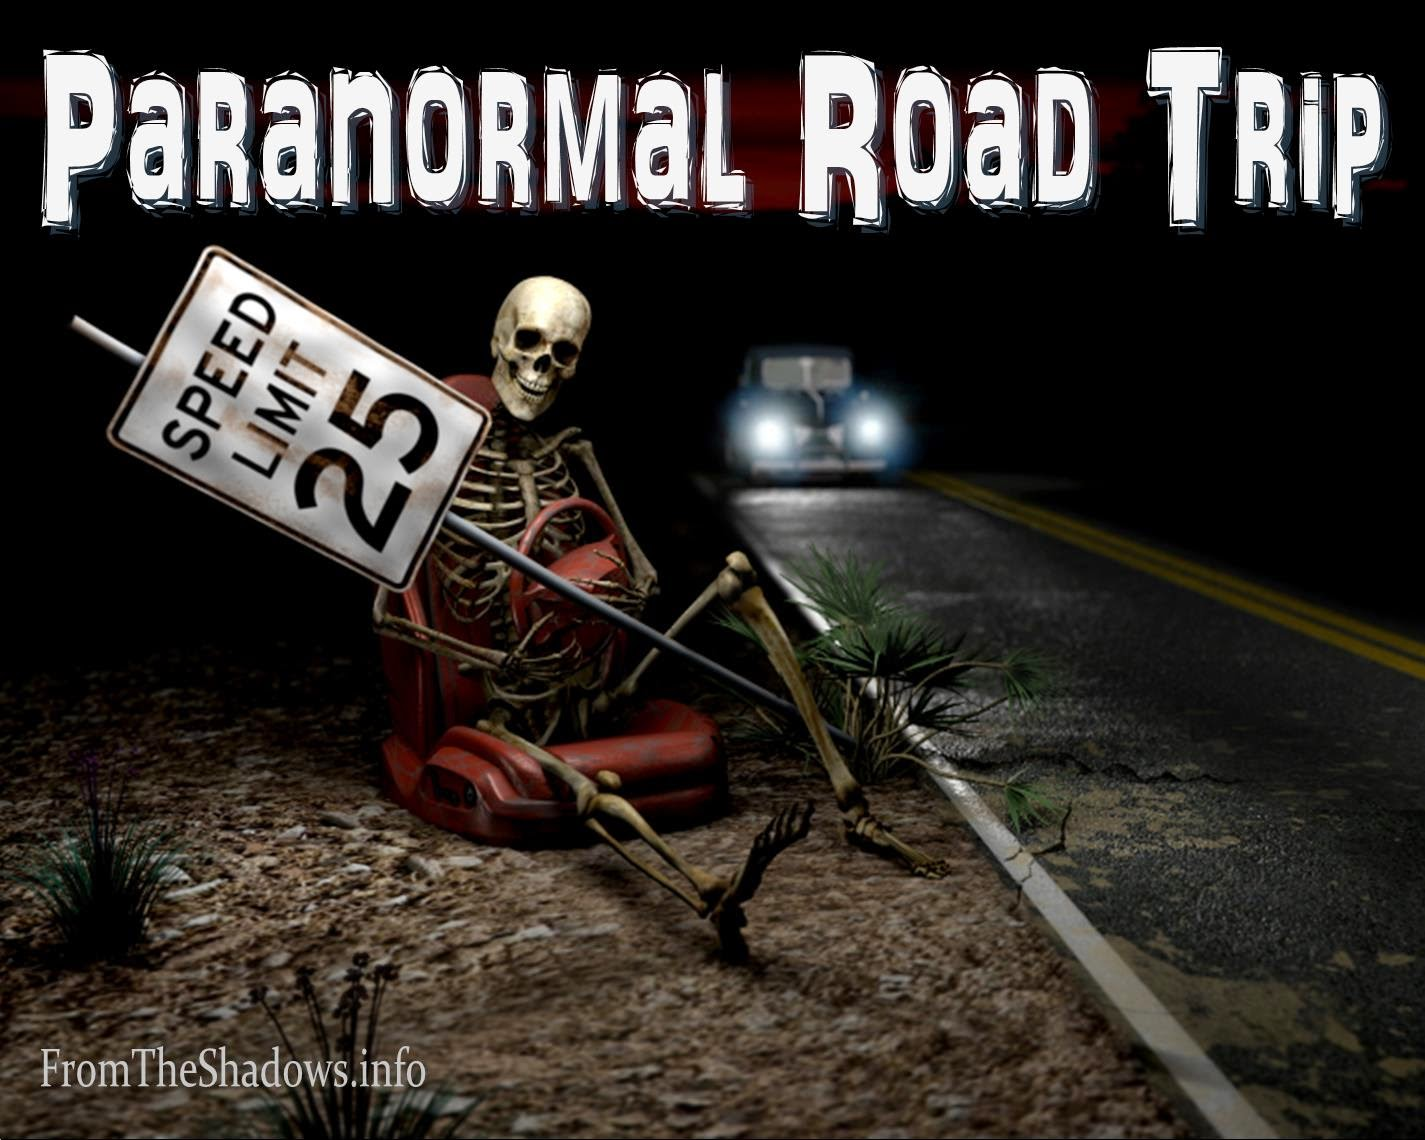 Paranormal Road Trip: Destination shiloh walker aka j.c. daniels